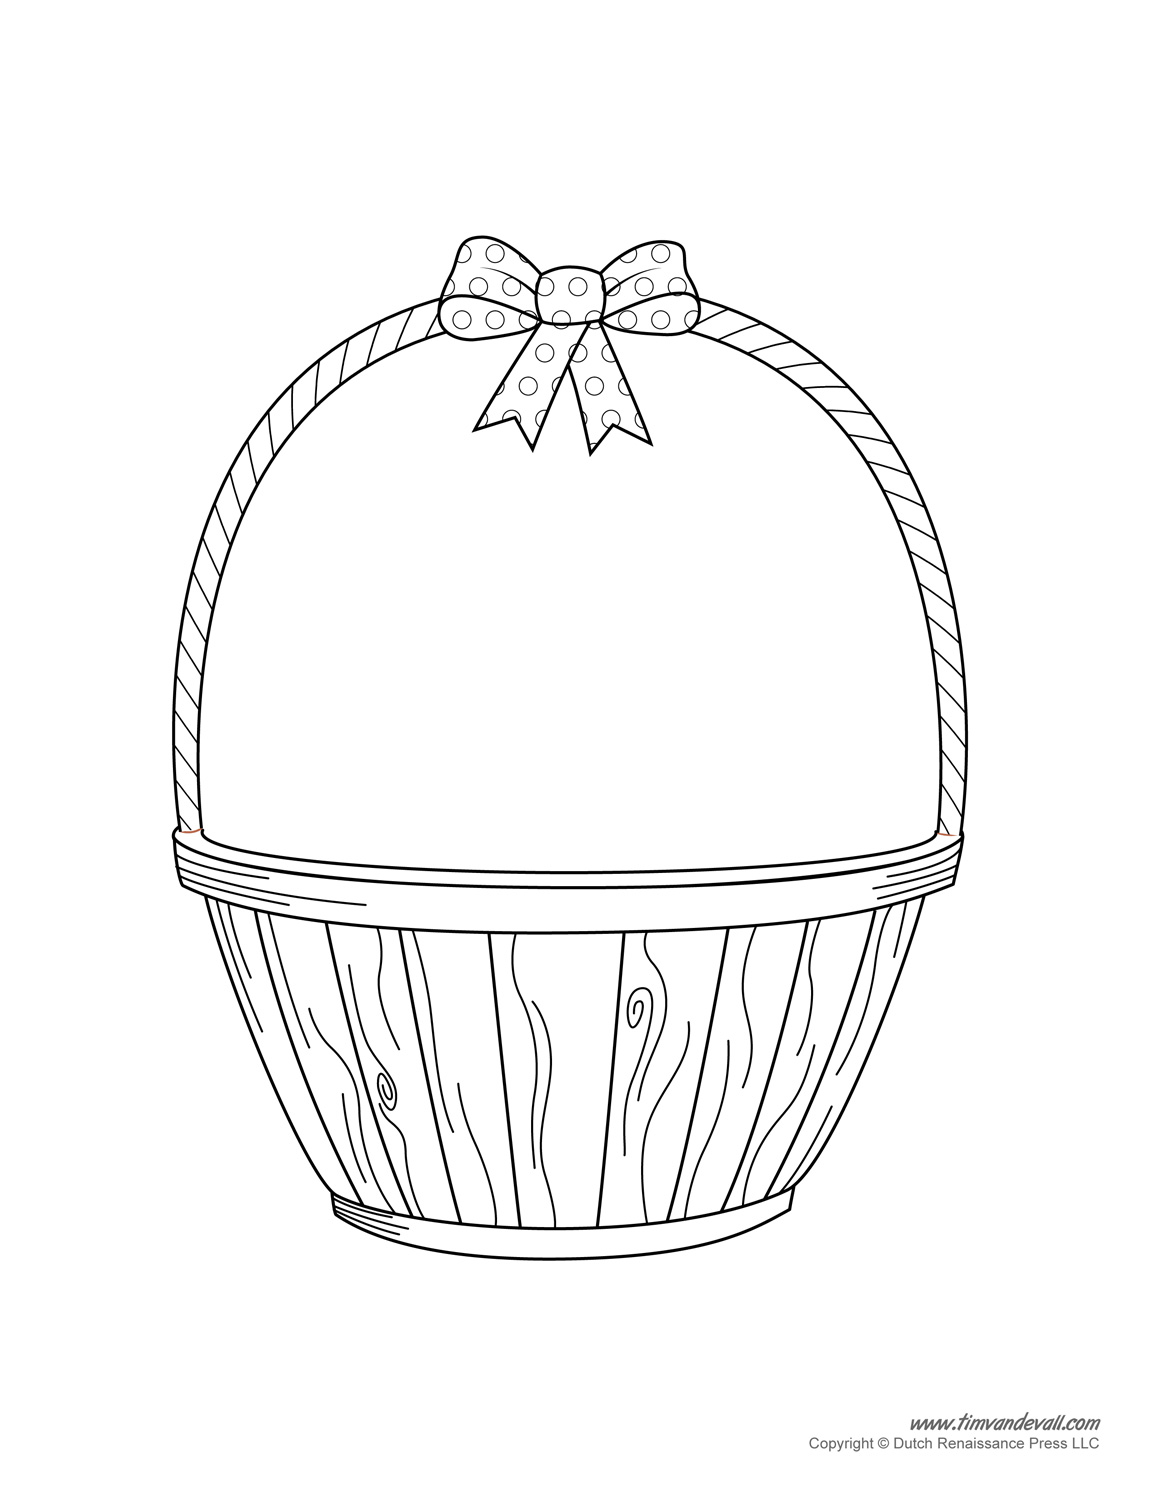 Empty easter basket clipart picture transparent Empty Easter Basket Coloring coloring page, coloring image ... picture transparent